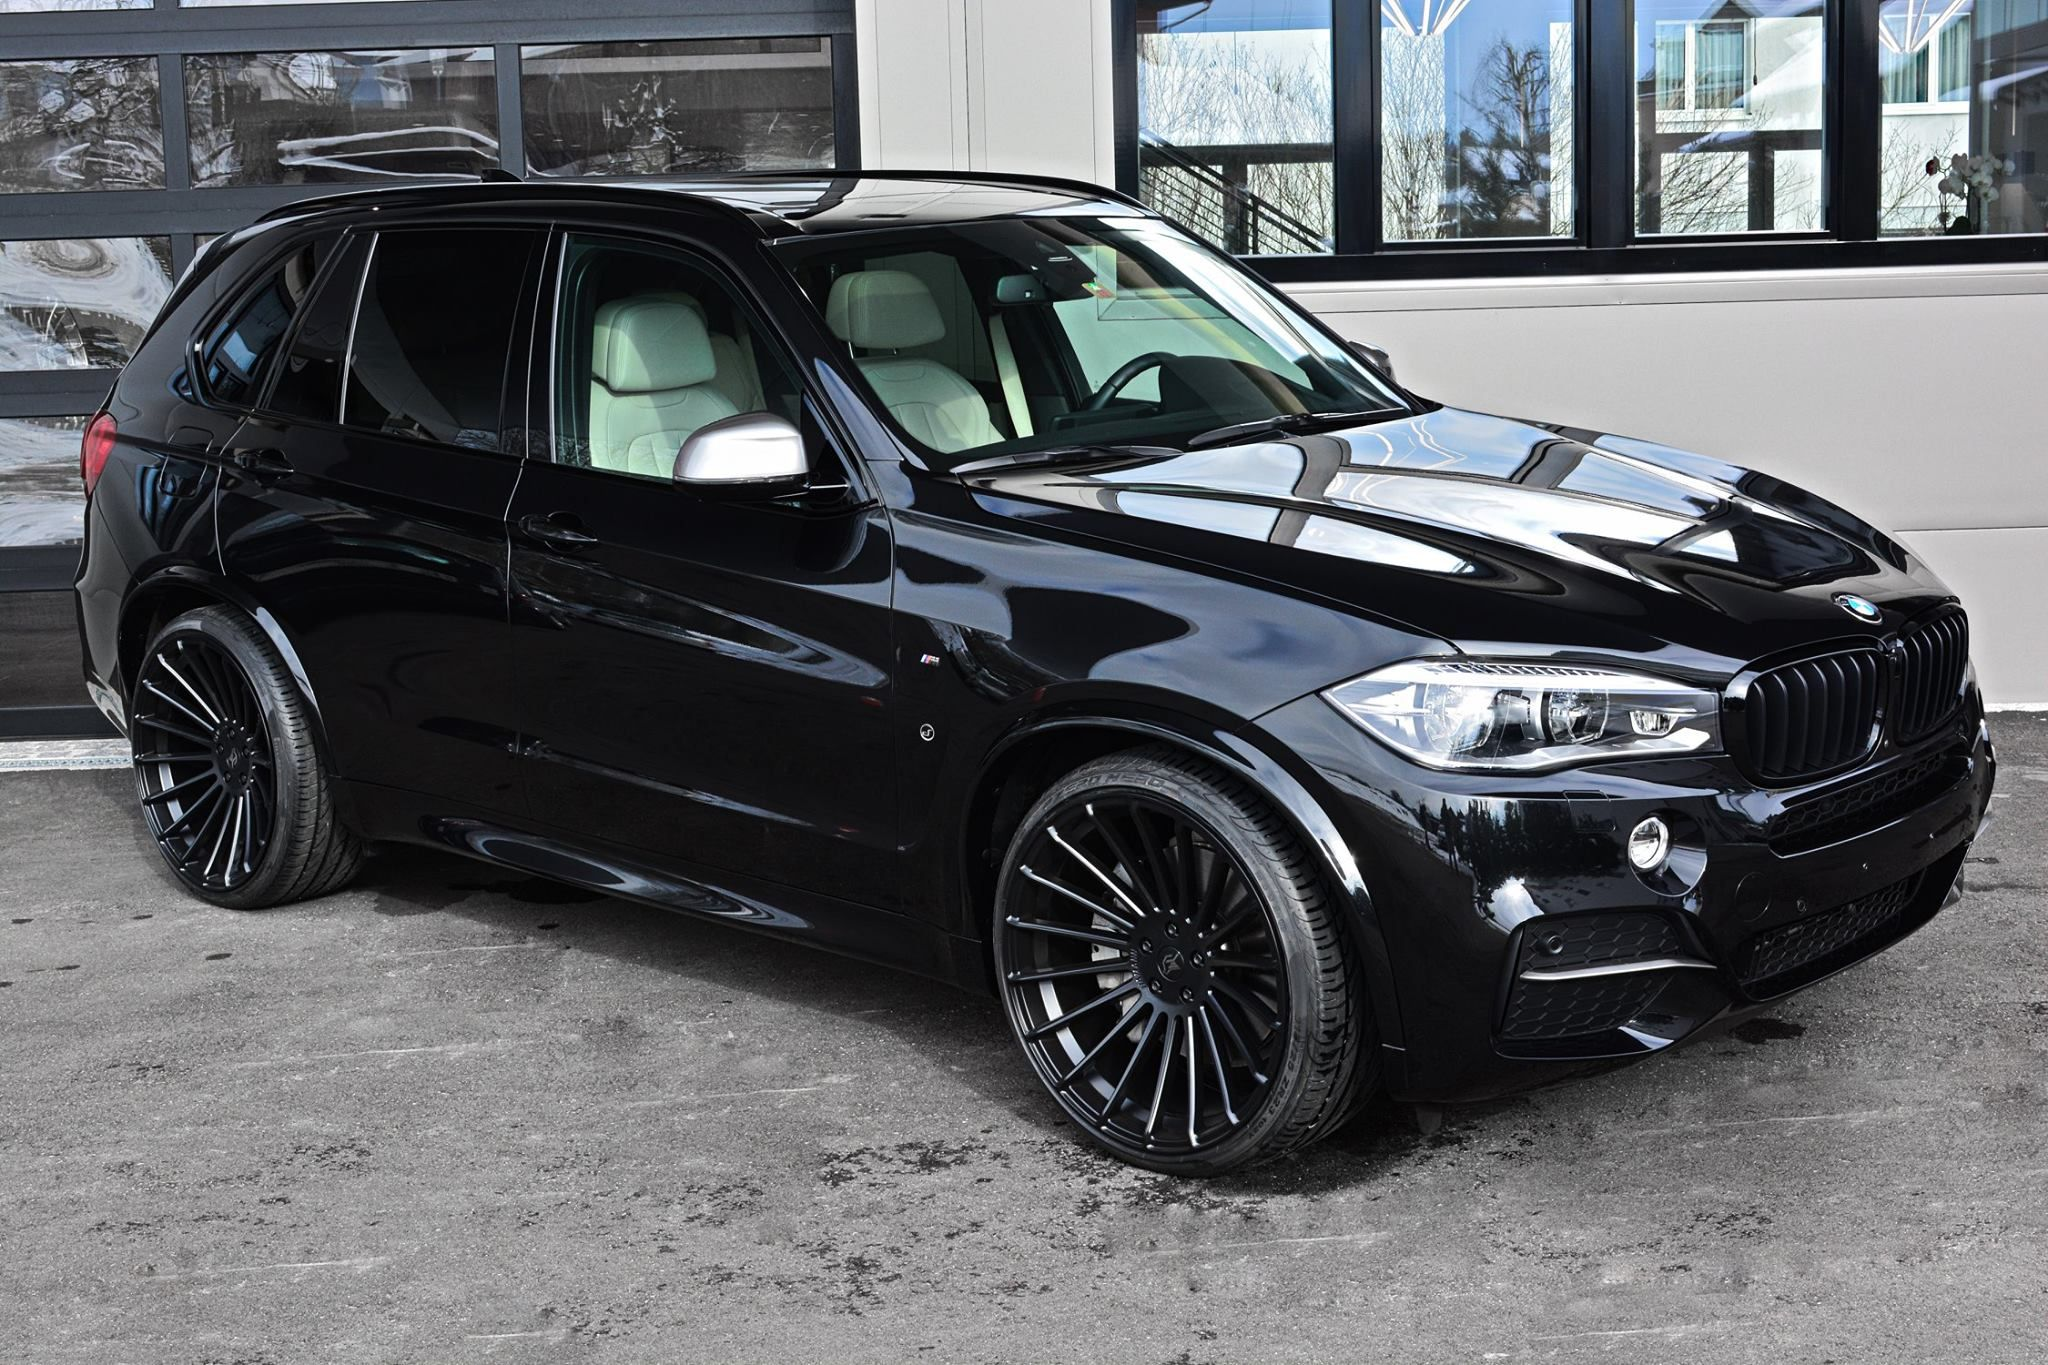 Hamann Bmw X5 M50d With 430 Hp With Images Bmw Suv Bmw X5 M